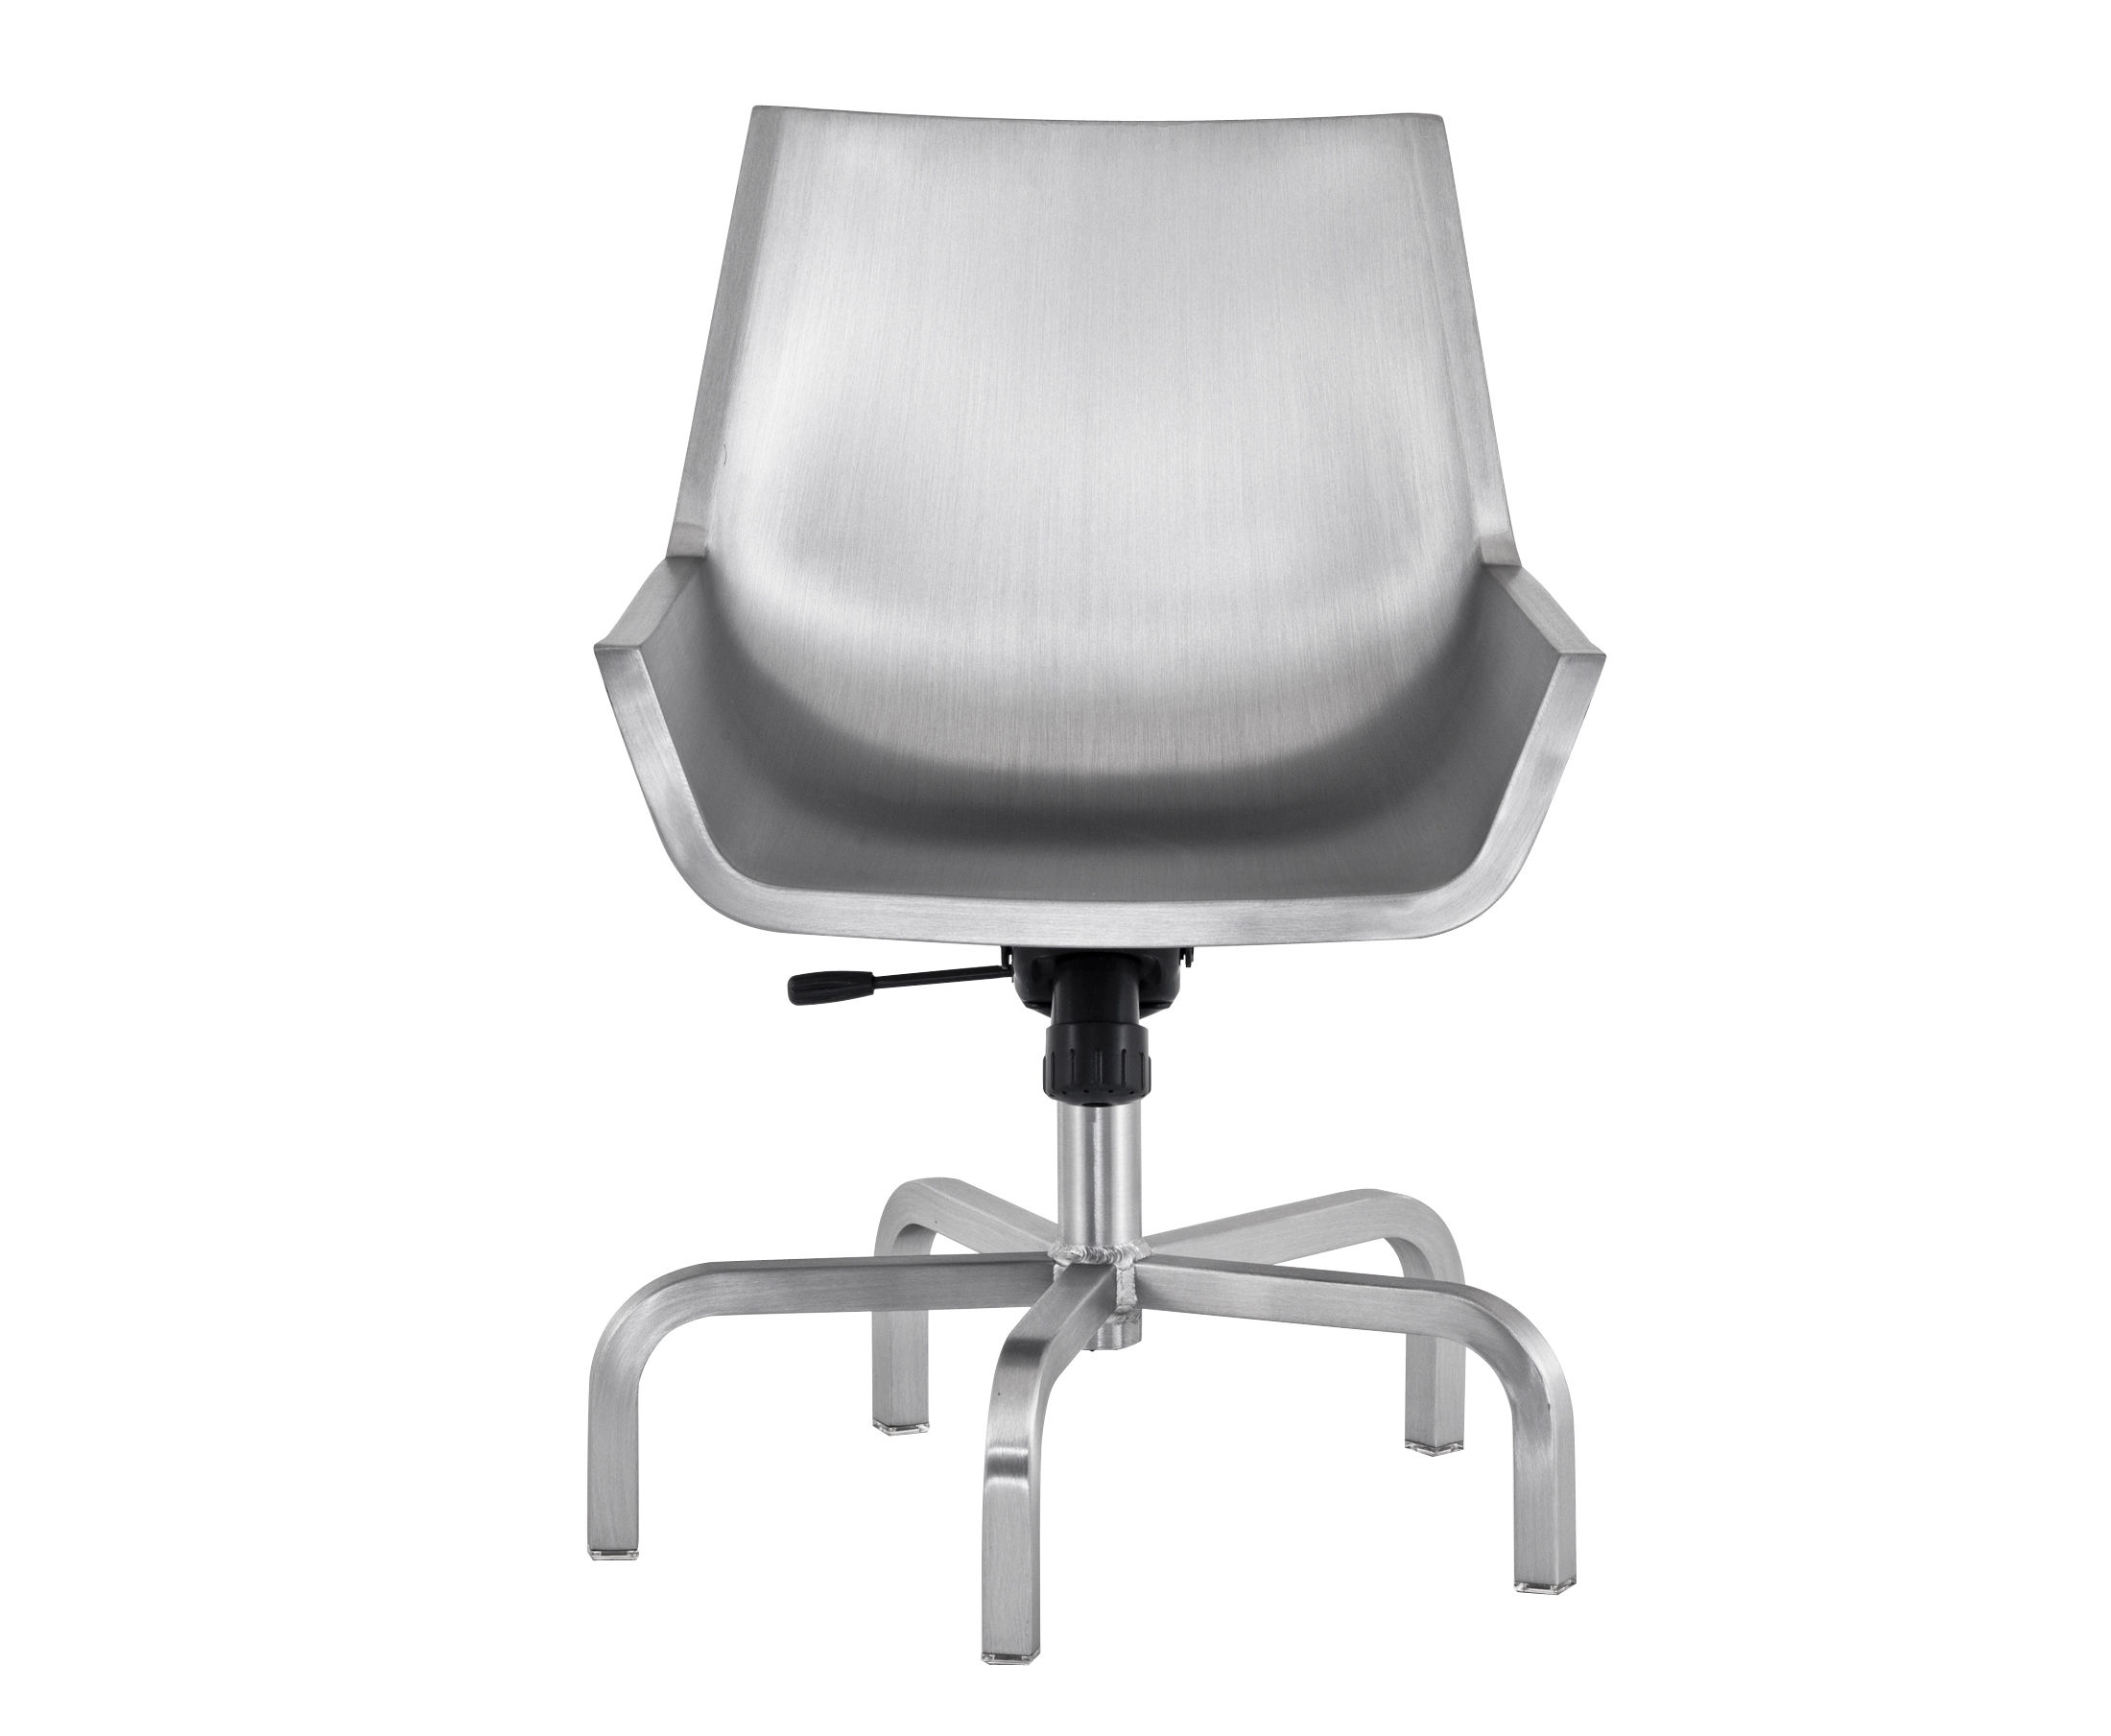 Furniture - Office Chairs - Sezz Swivel armchair by Emeco - Brushed aluminium - Aluminium recyclé finition brossé